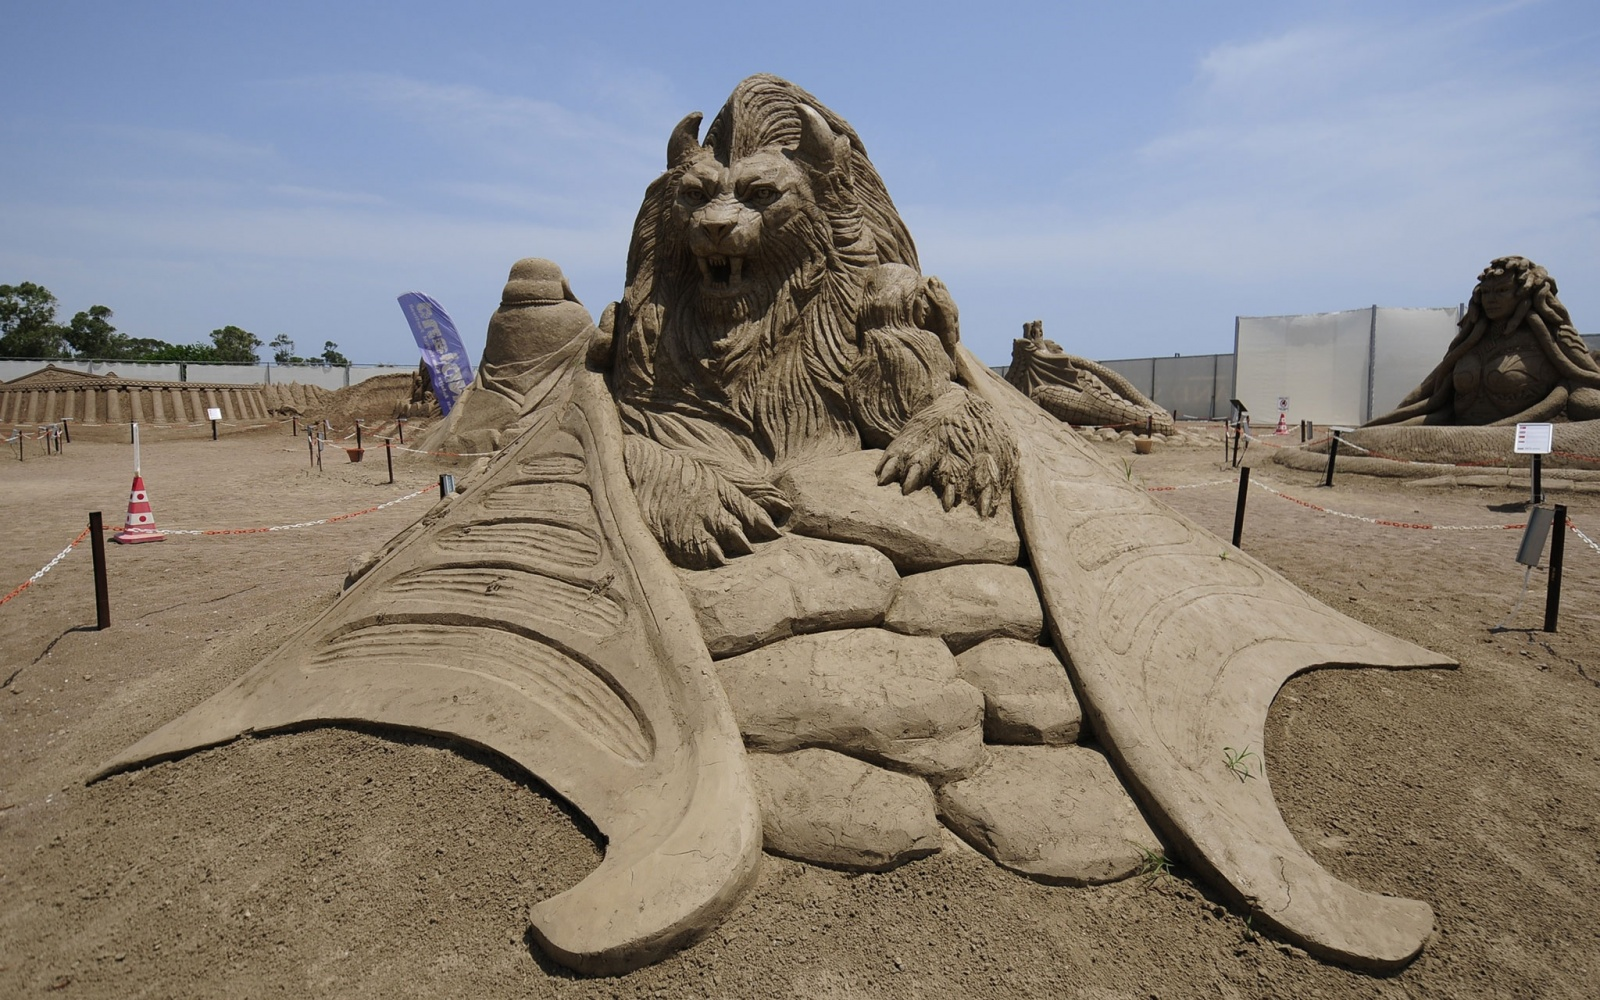 Turkey's Sand Sculpture Festival